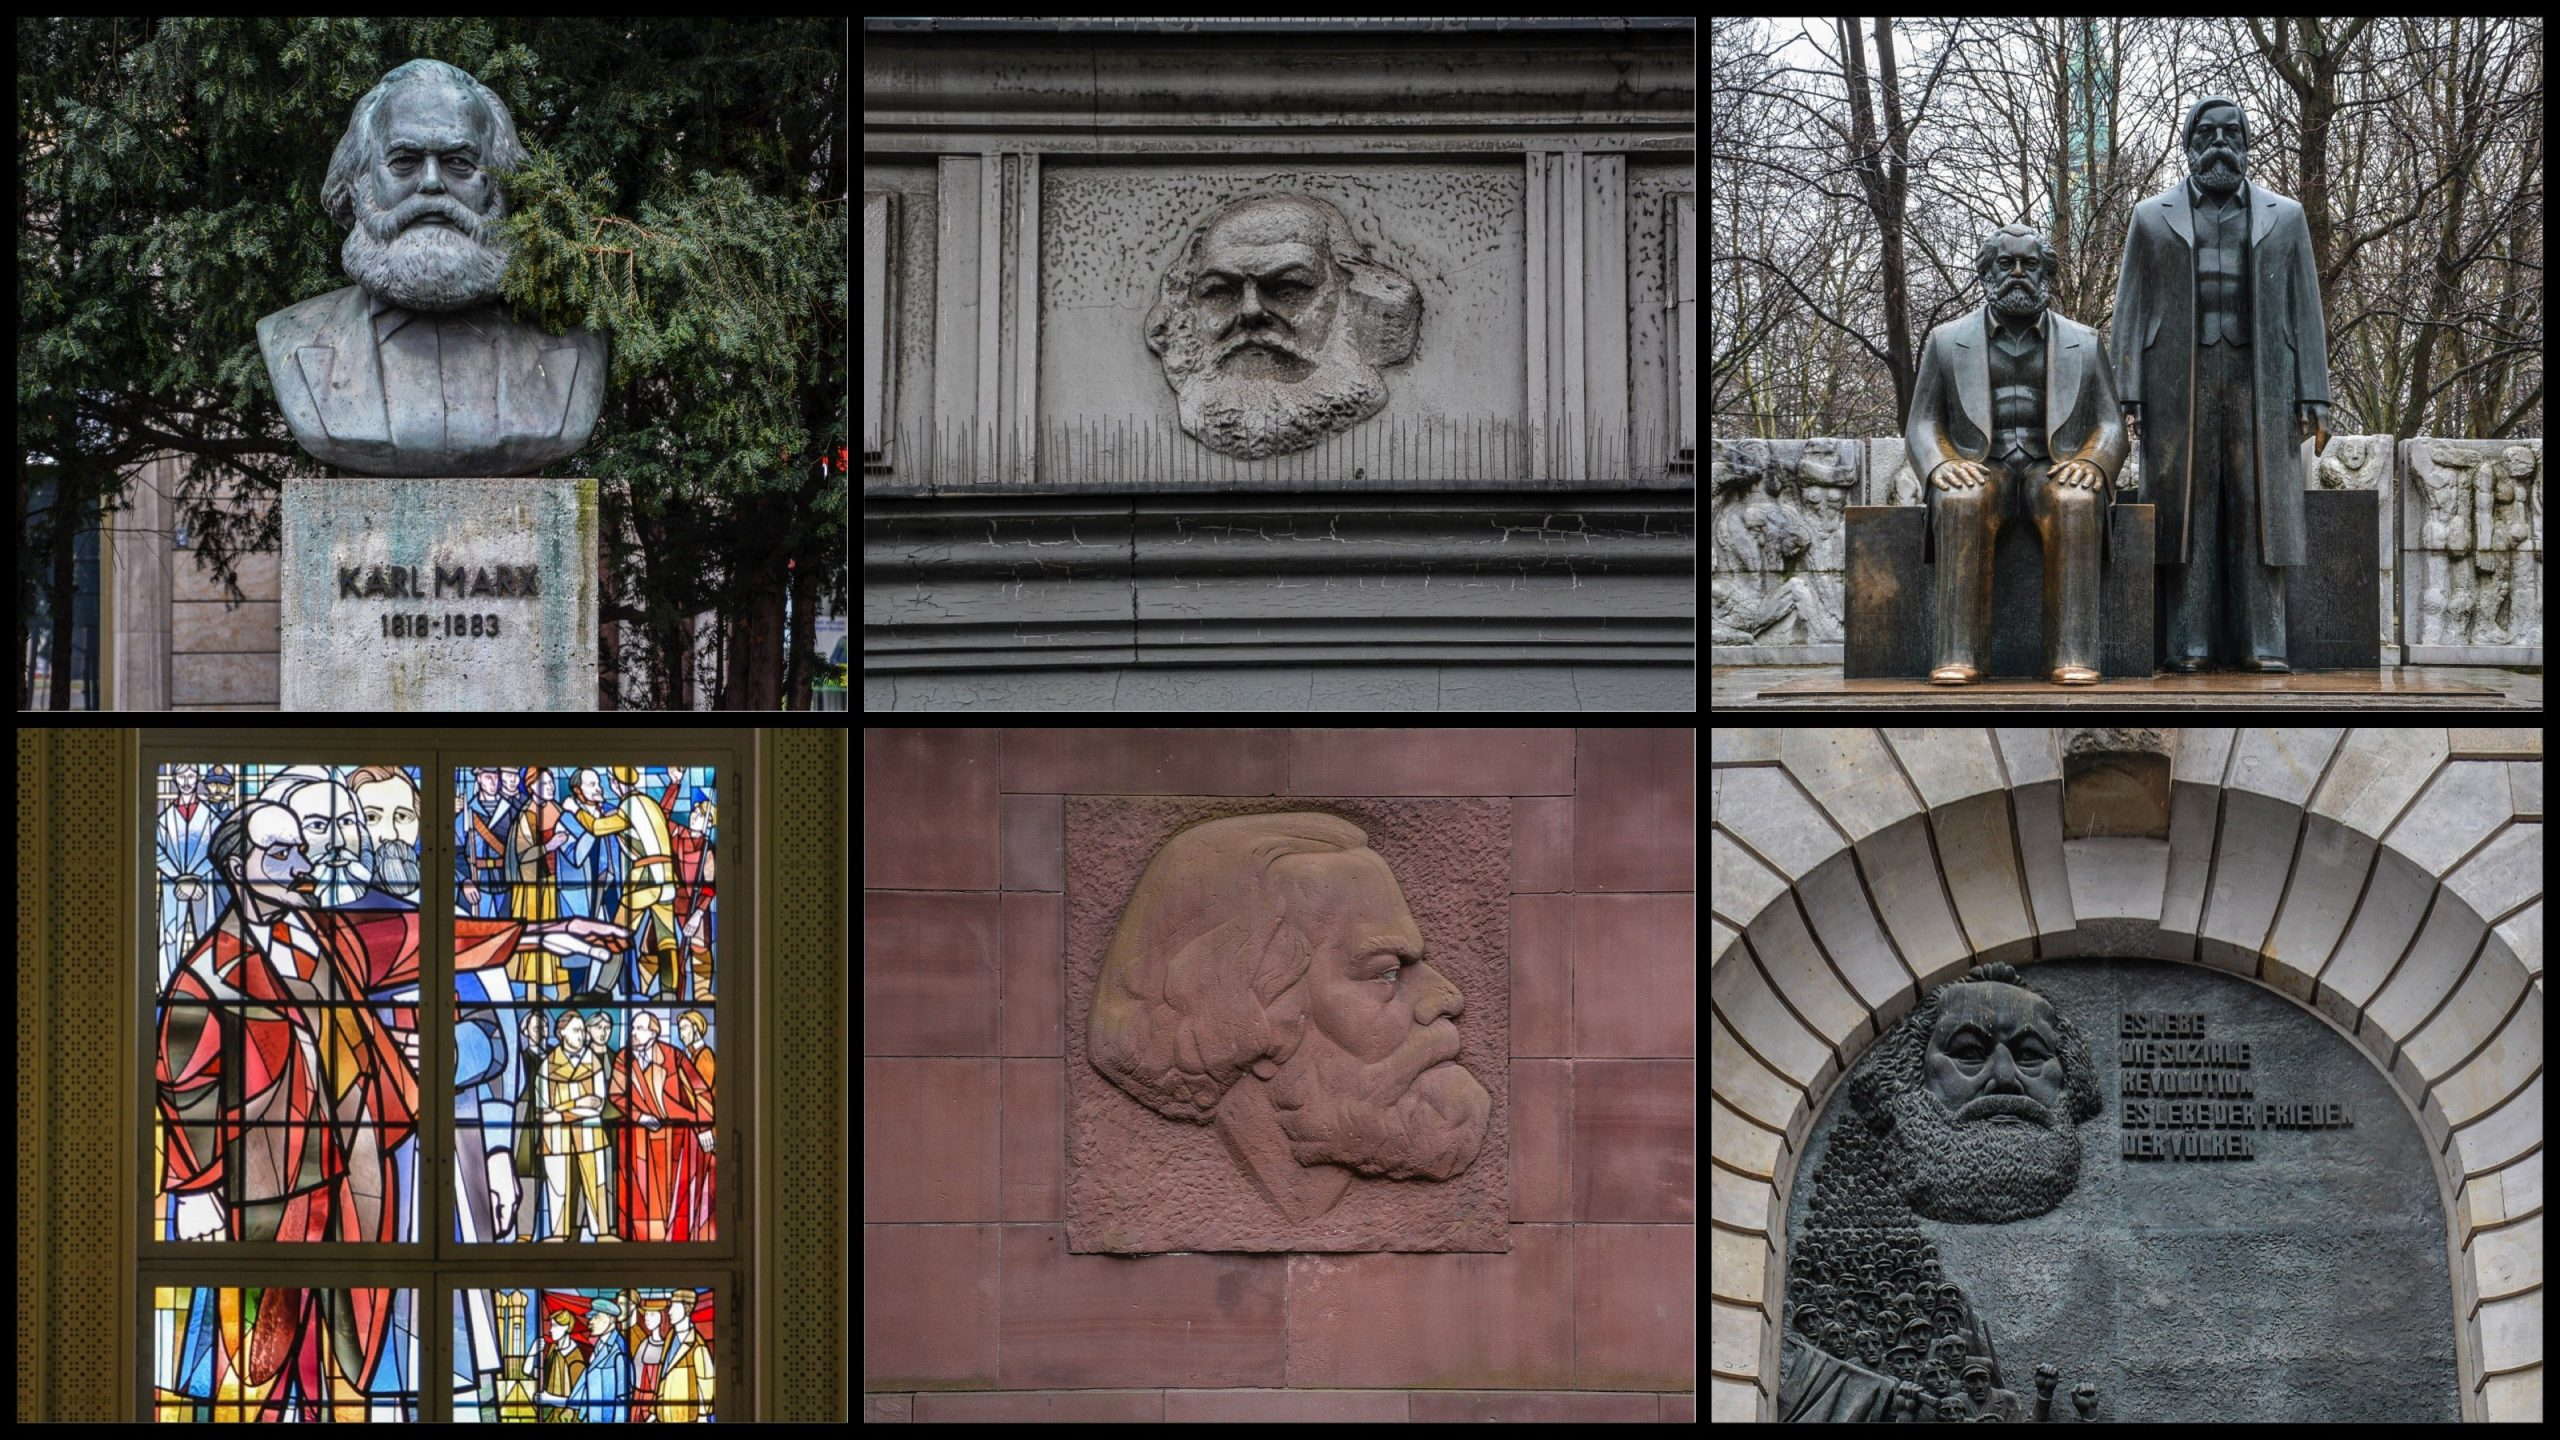 karl marx berlin germany collage